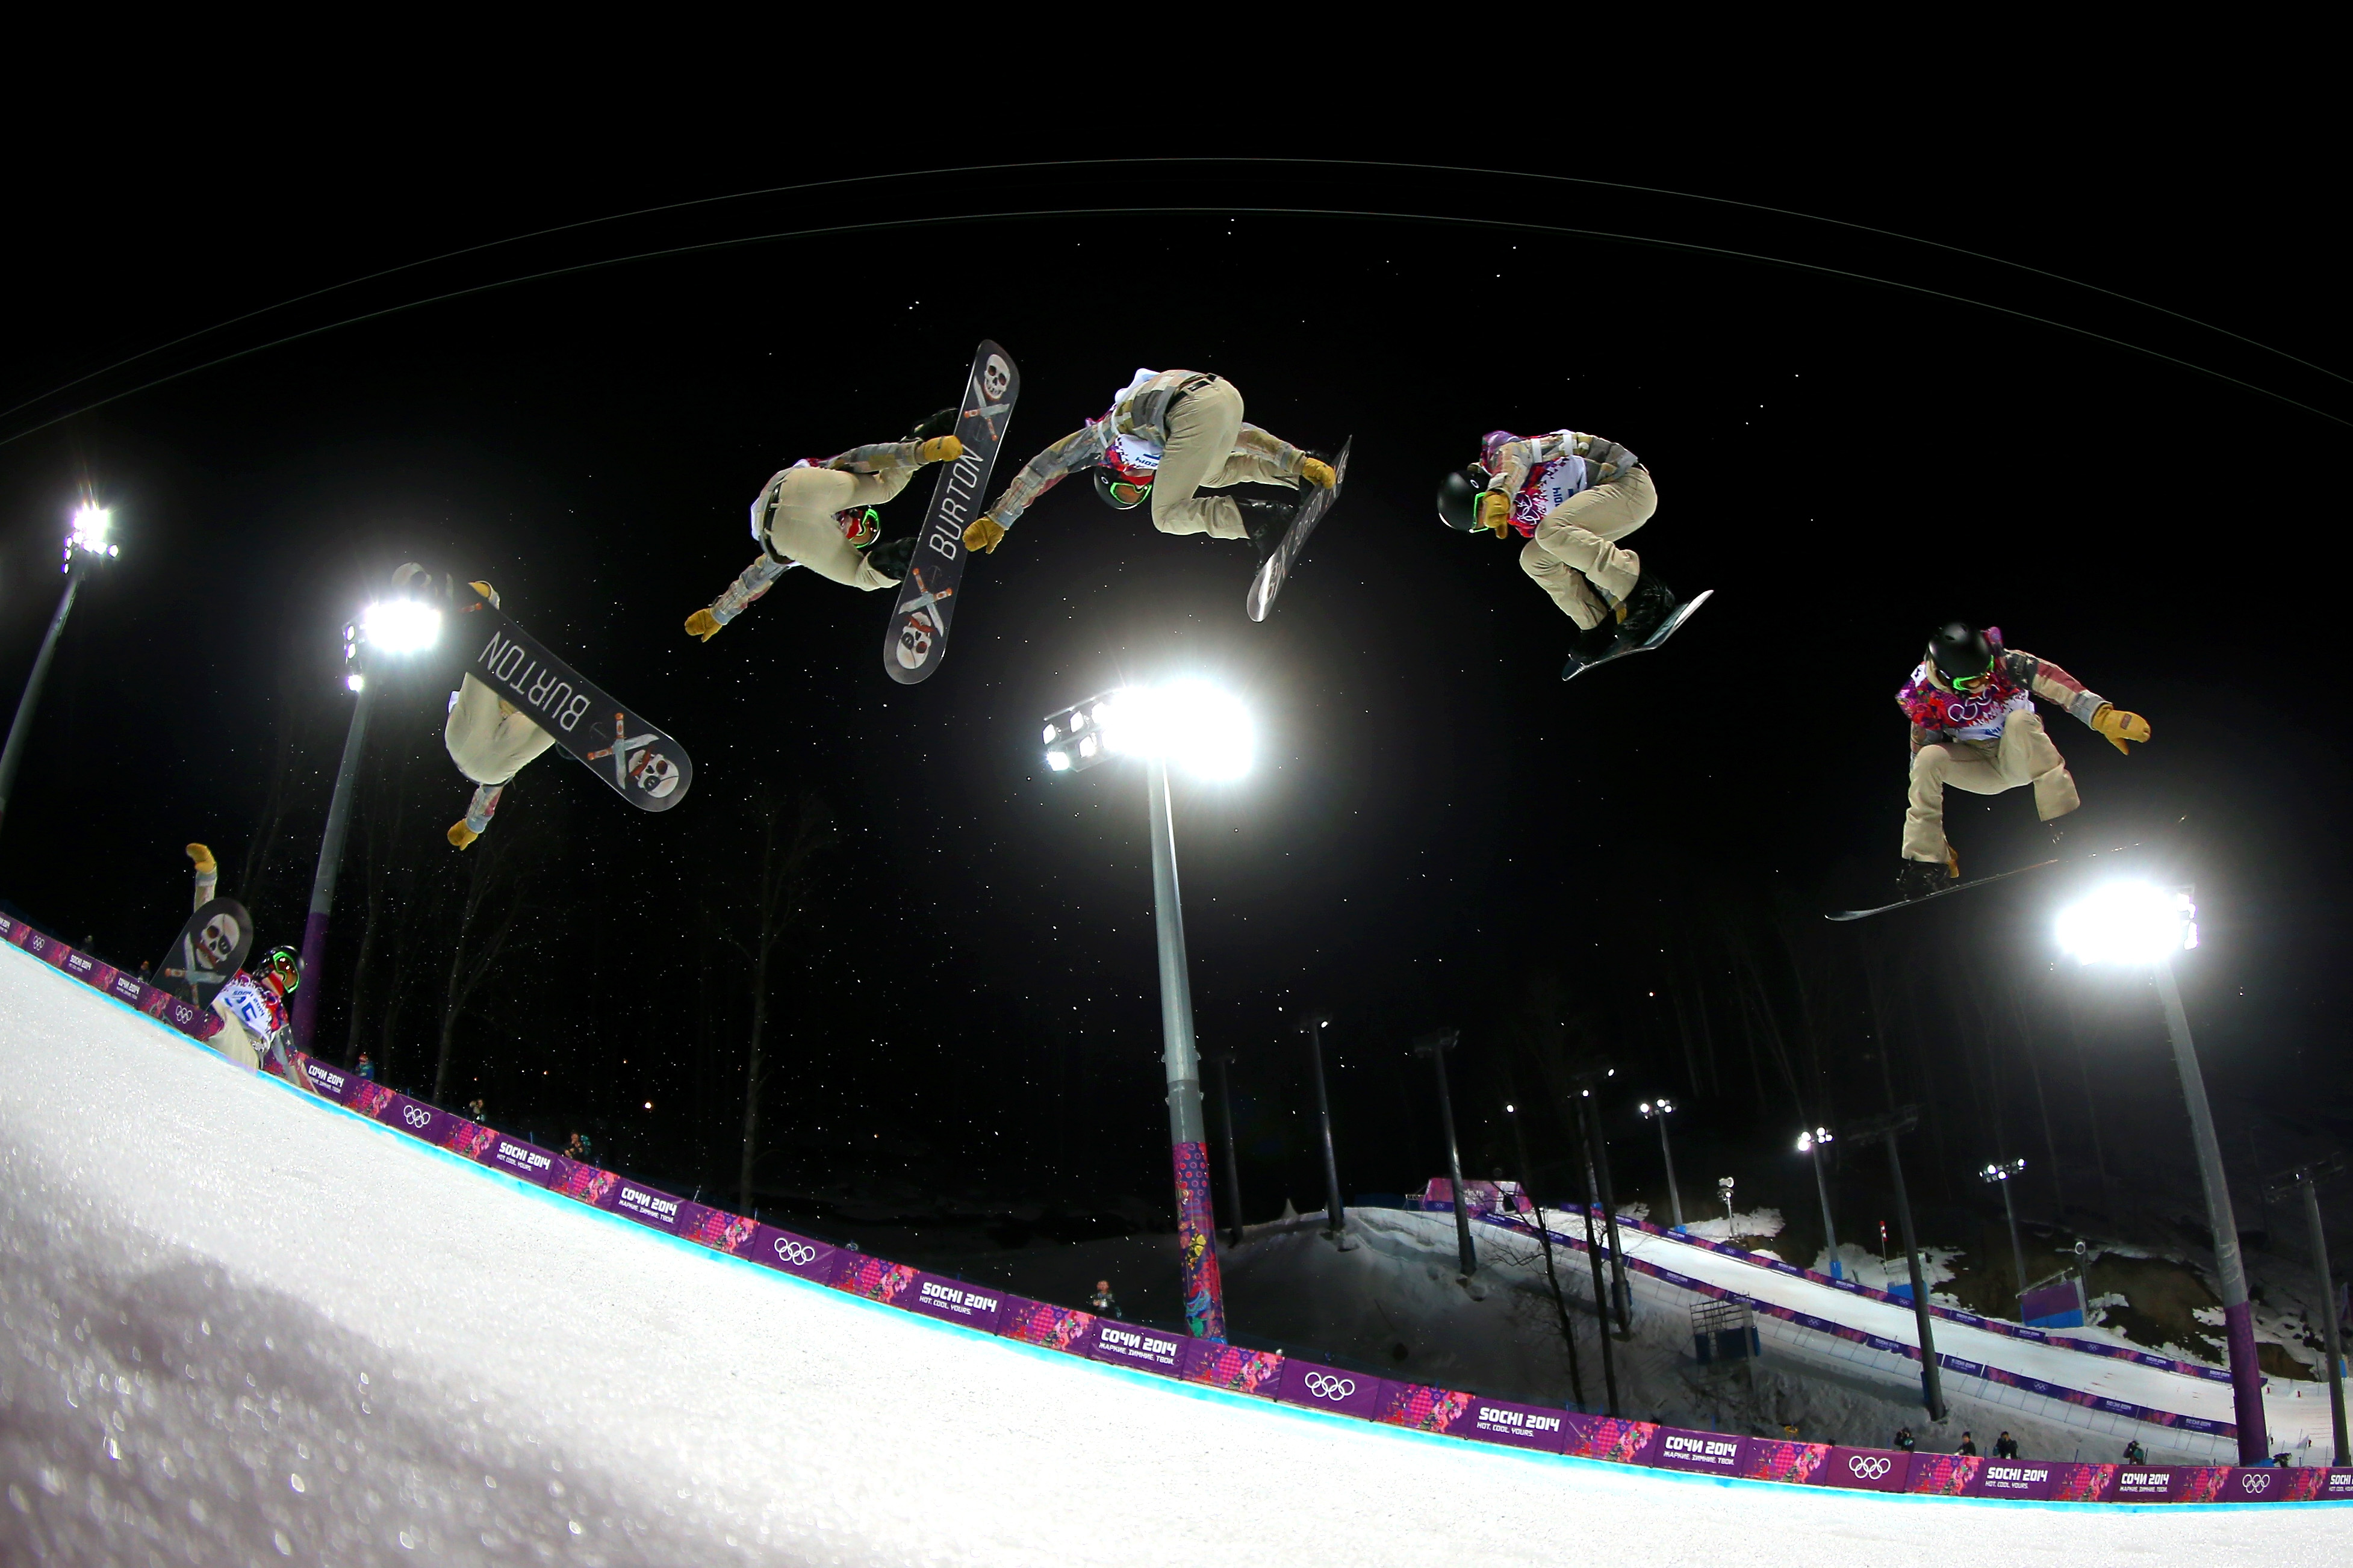 Shaun White practices before the Snowboard Men's Halfpipe Finals at Sochi (Editors Note: Multiple exposures were combined in camera to produce this image.) (Mike Ehrmann/Getty Images)